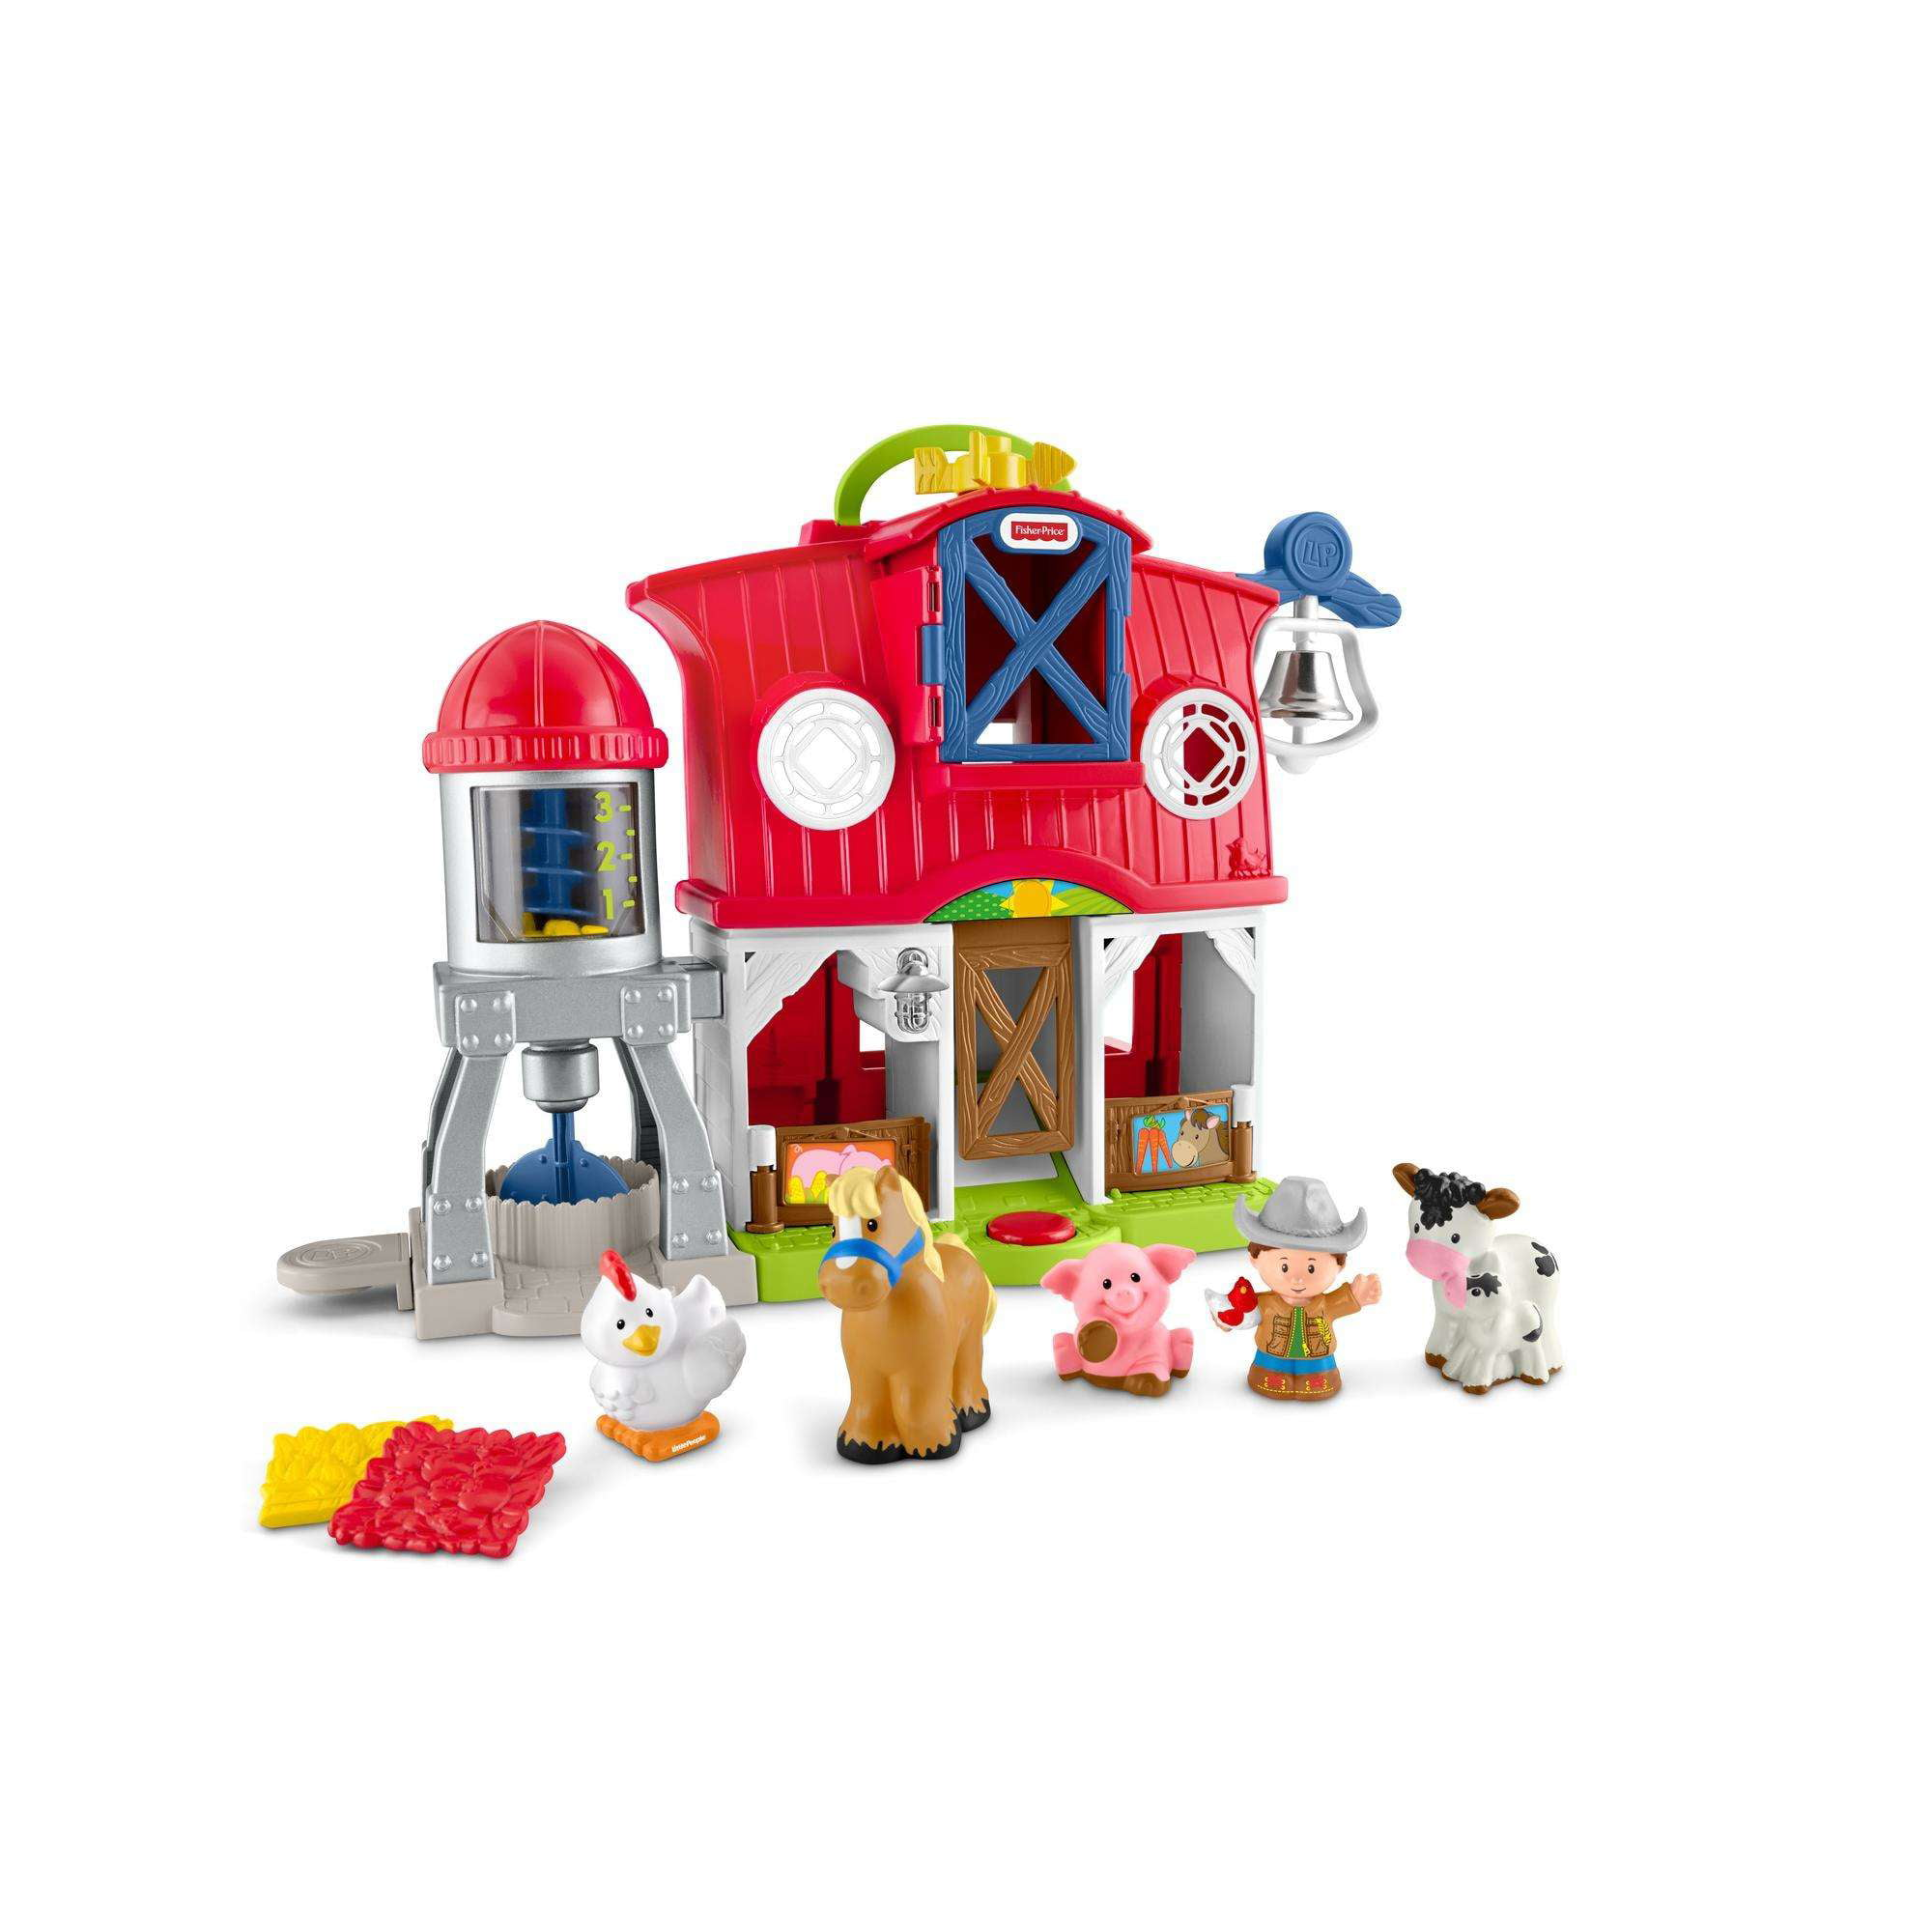 Little People Caring For Animals Farm Playset by Little People